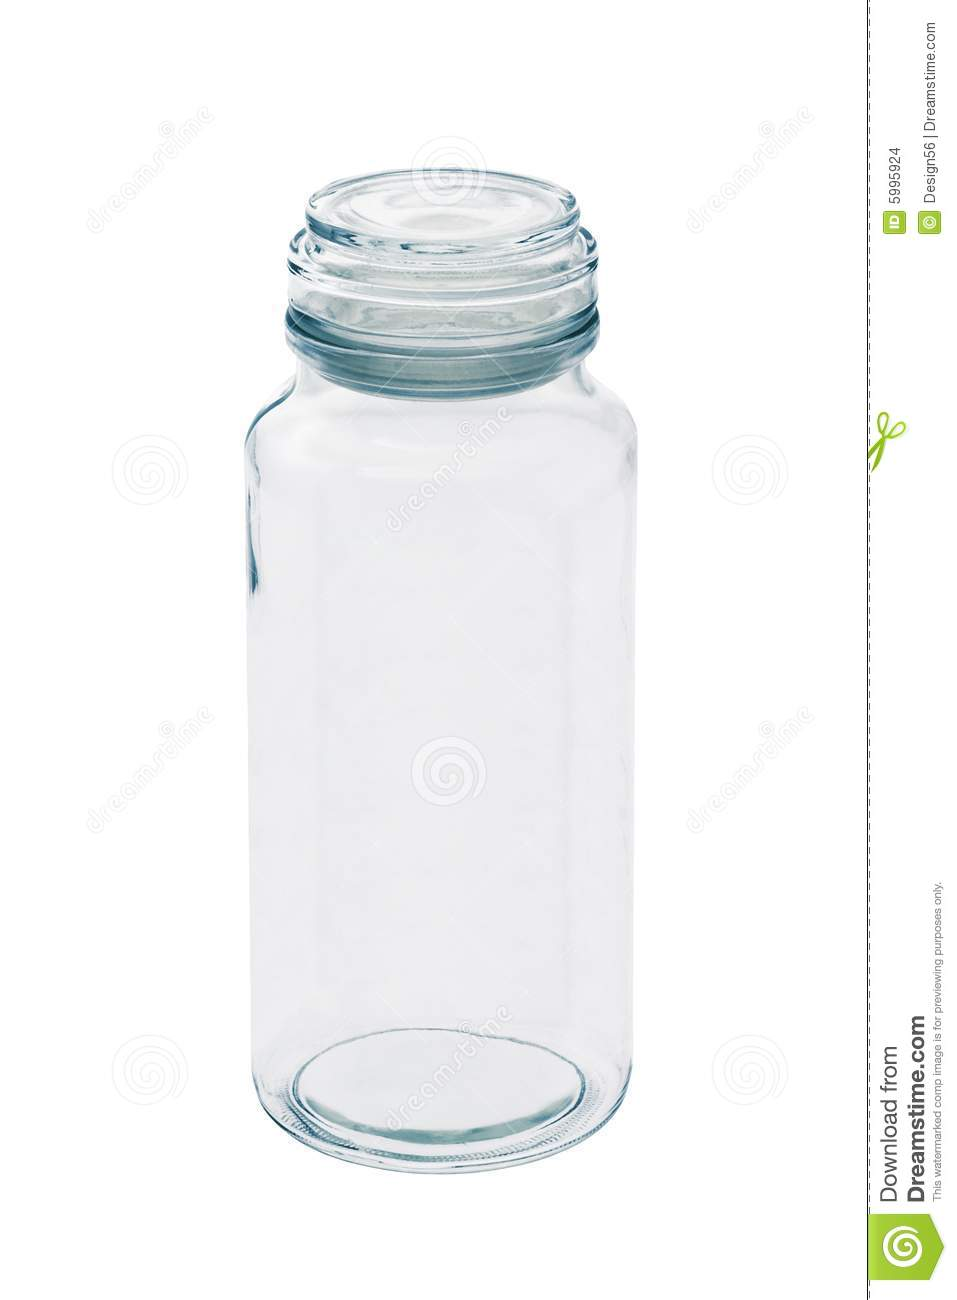 Tall Empty Glass Jar With Lid Stock Photo - Image of open